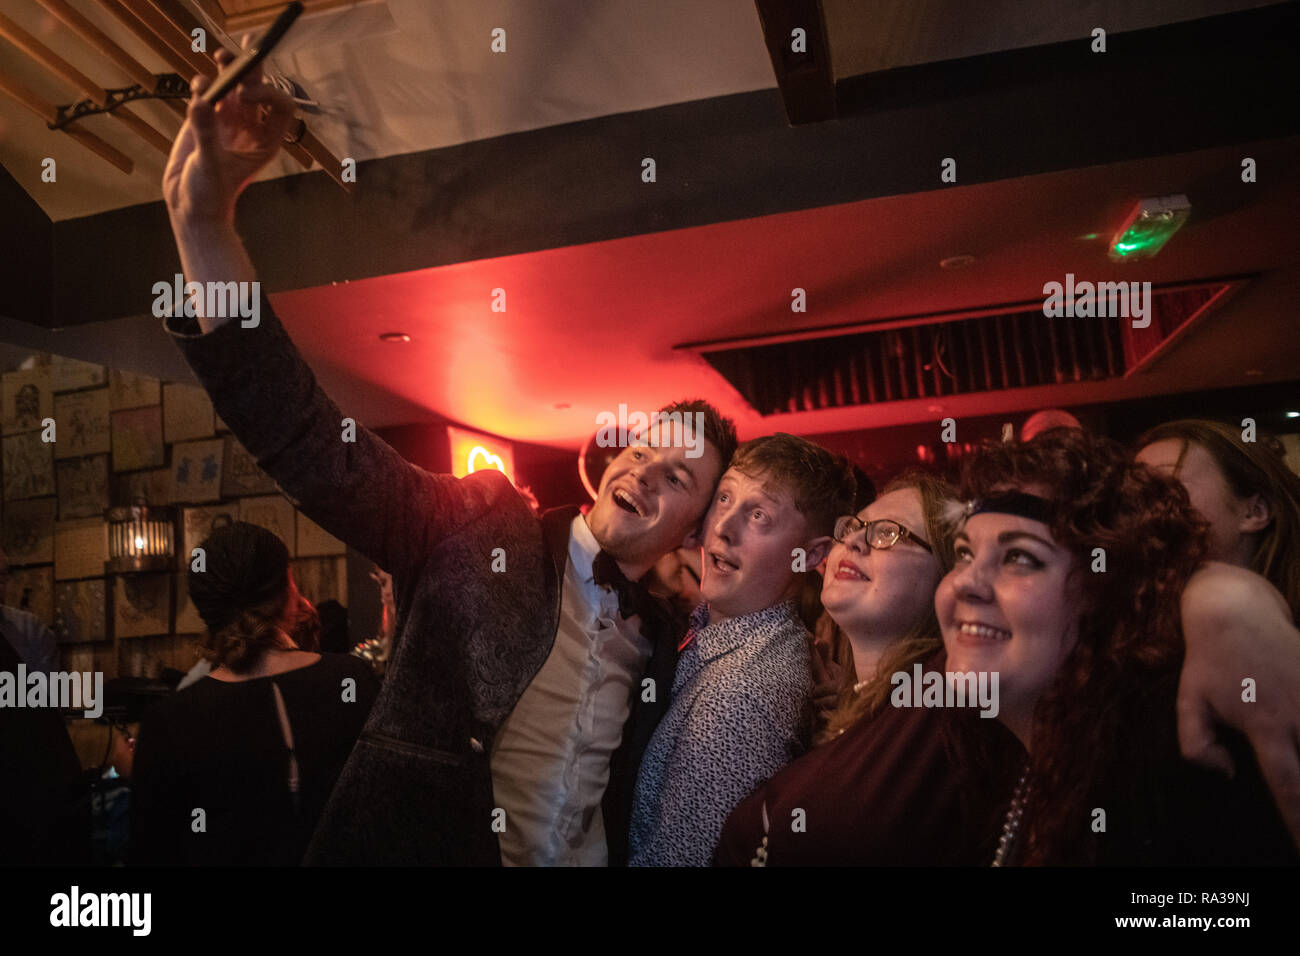 Oxford, UK. 31st Dec, 2018. New Year's Eve party in Oxford. The Rickety Press through a celebration of the 1920s, complete with blacked out windows and a performance by the Rabbit Foot Spasm band. Dressed up and getting a selfie at midnight. Permission given for pictures to be published. Credit: Sidney Bruere/Alamy Live News Stock Photo